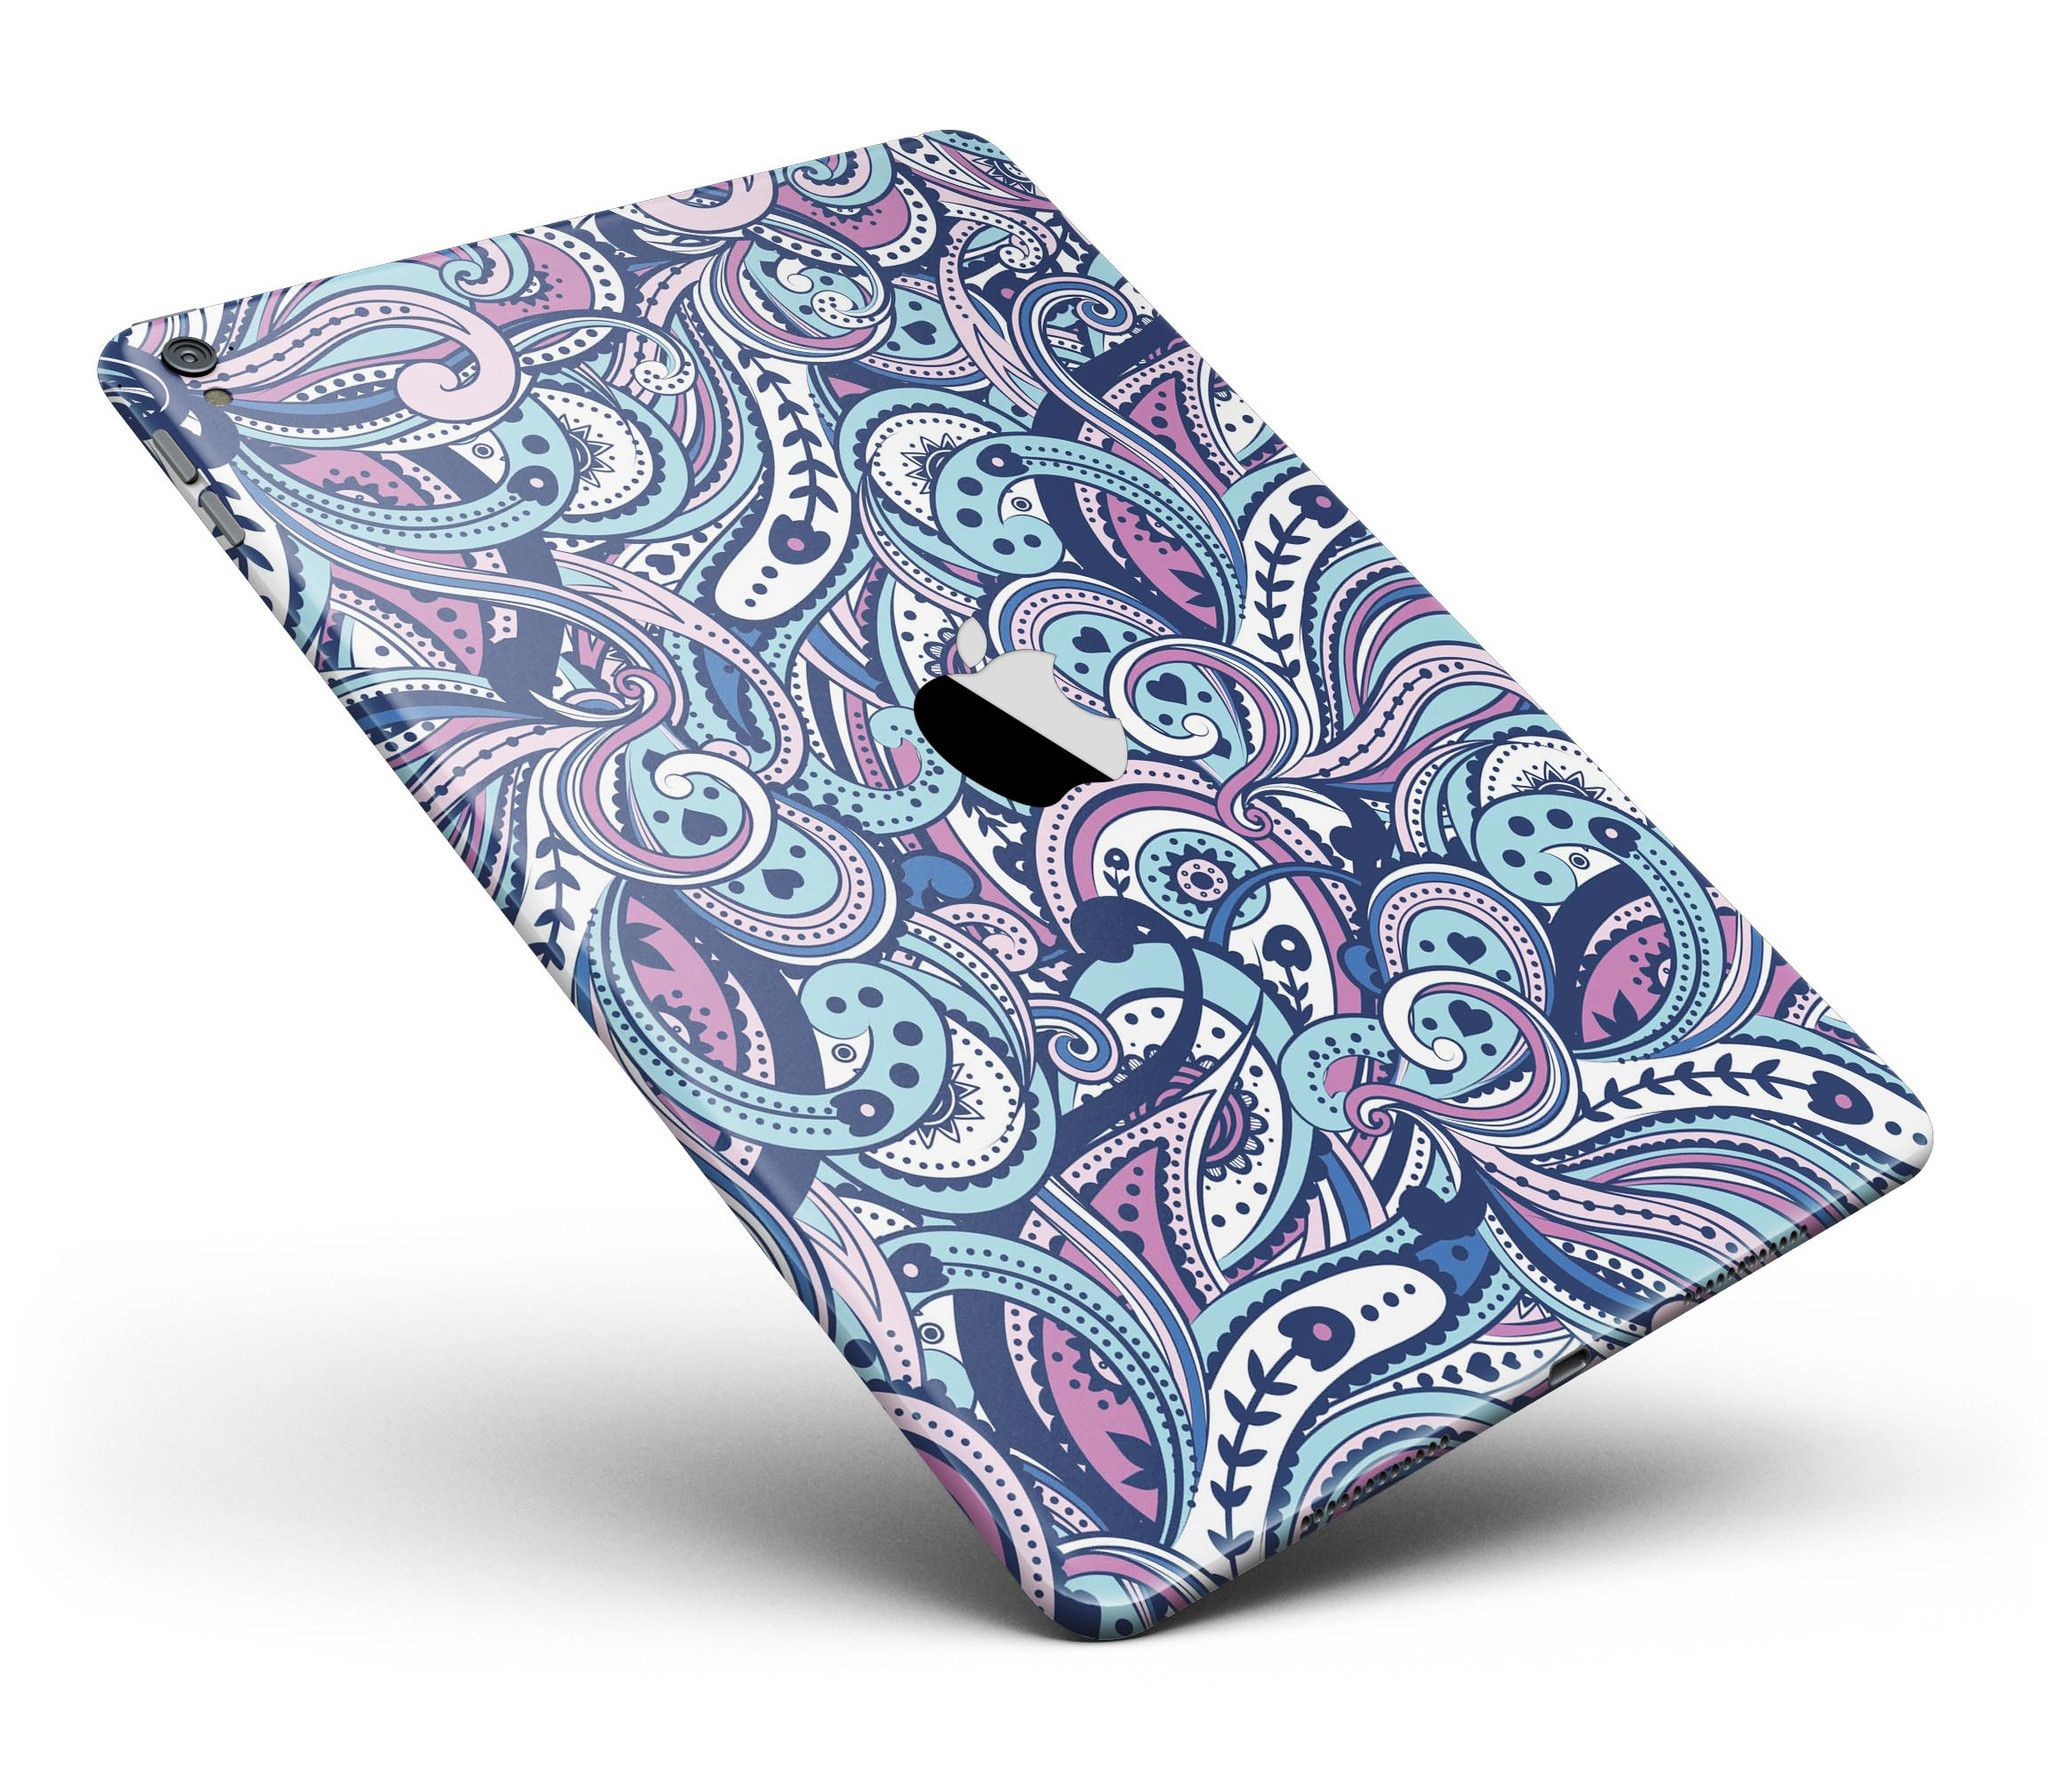 """Vibrant Purple Toned Sproutaneous Full Body Skin for the iPad Pro (12.9"""" or 9.7"""" available) from DesignSkinz"""